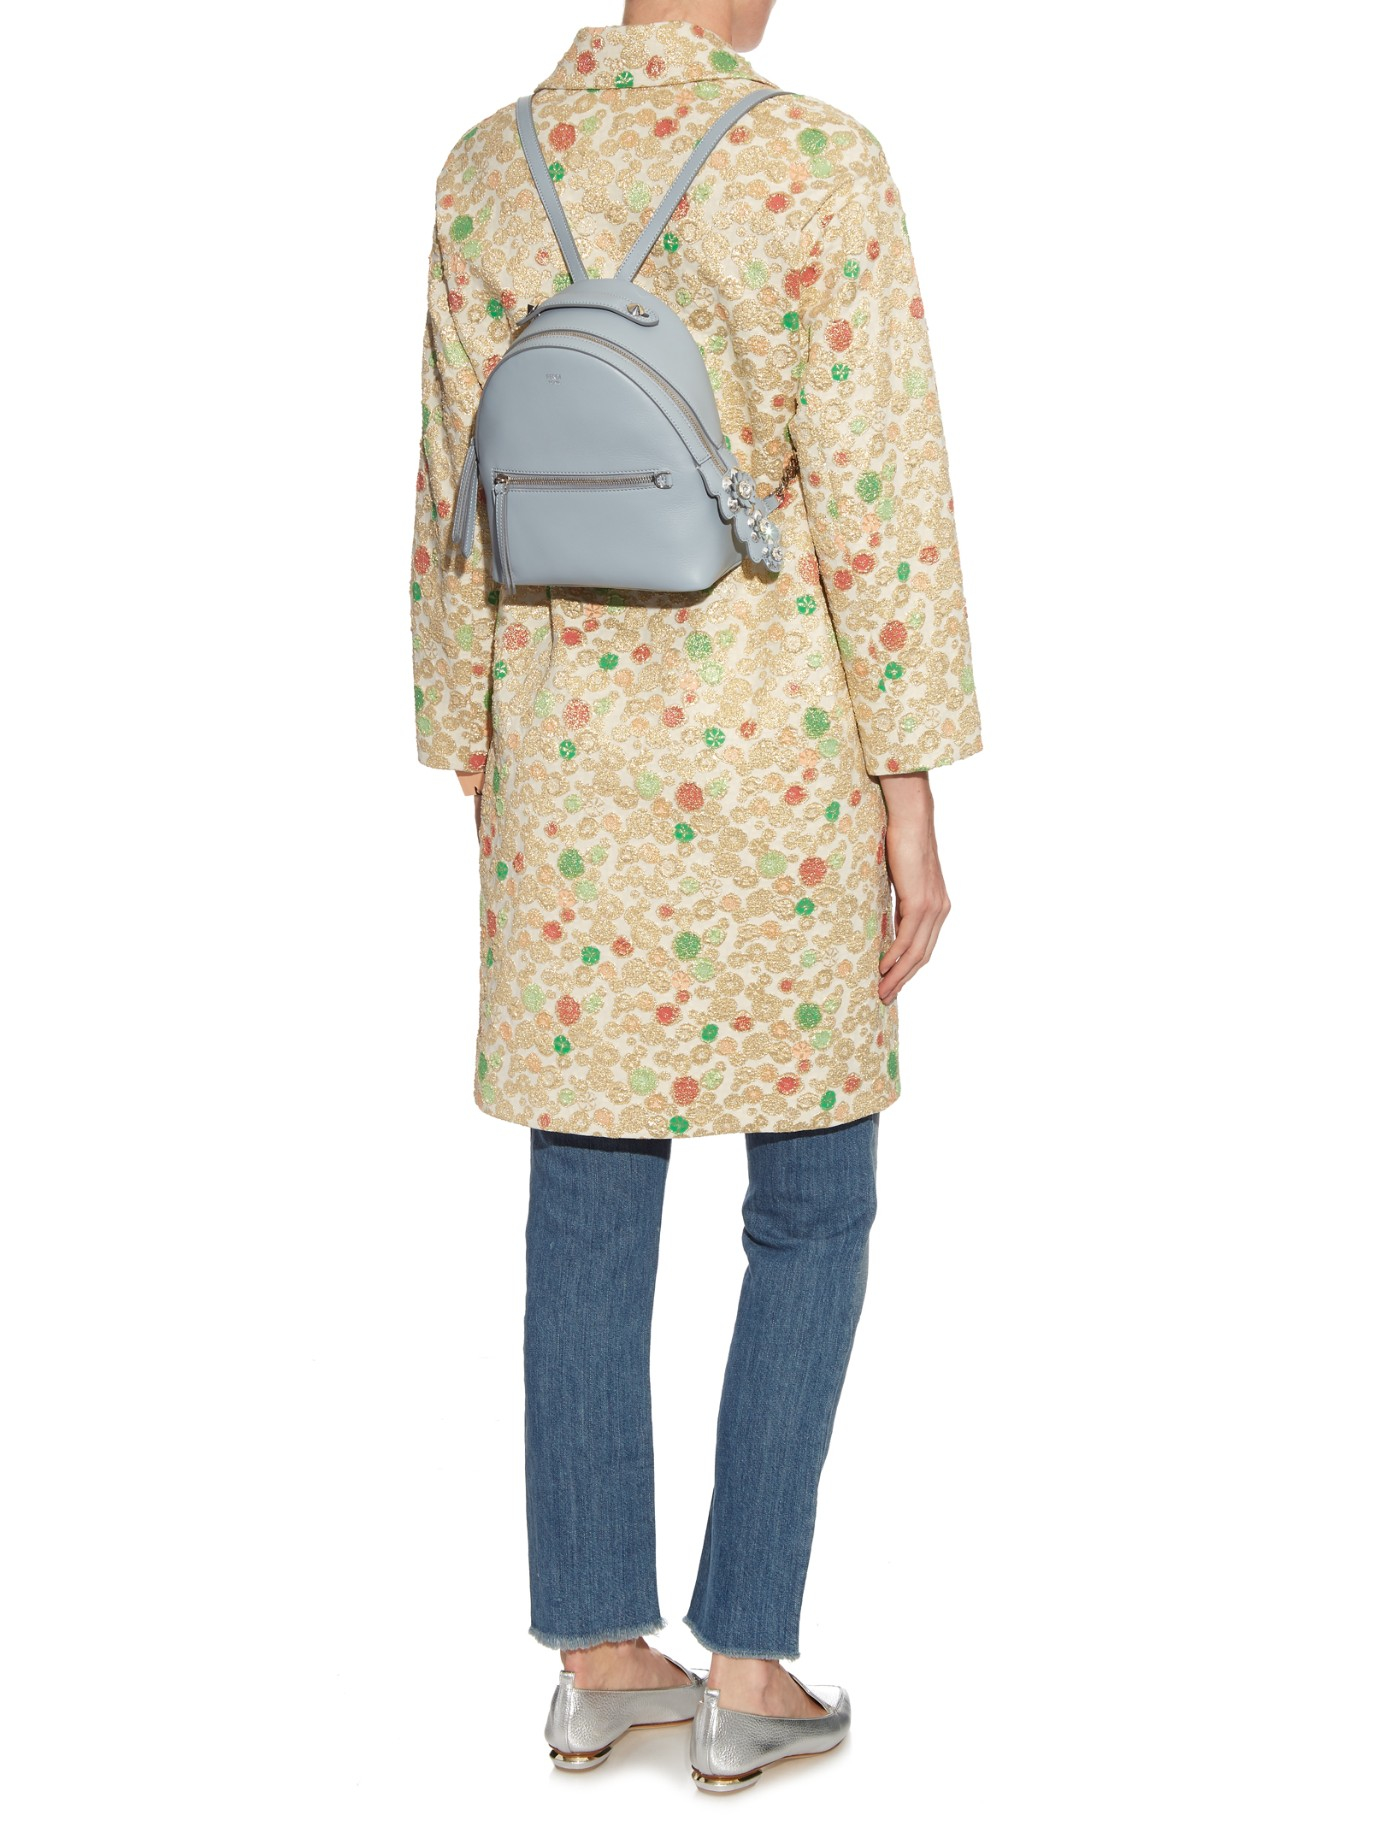 Fendi Leather By The Way Mini Flowerland Backpack in Light Blue (Blue)